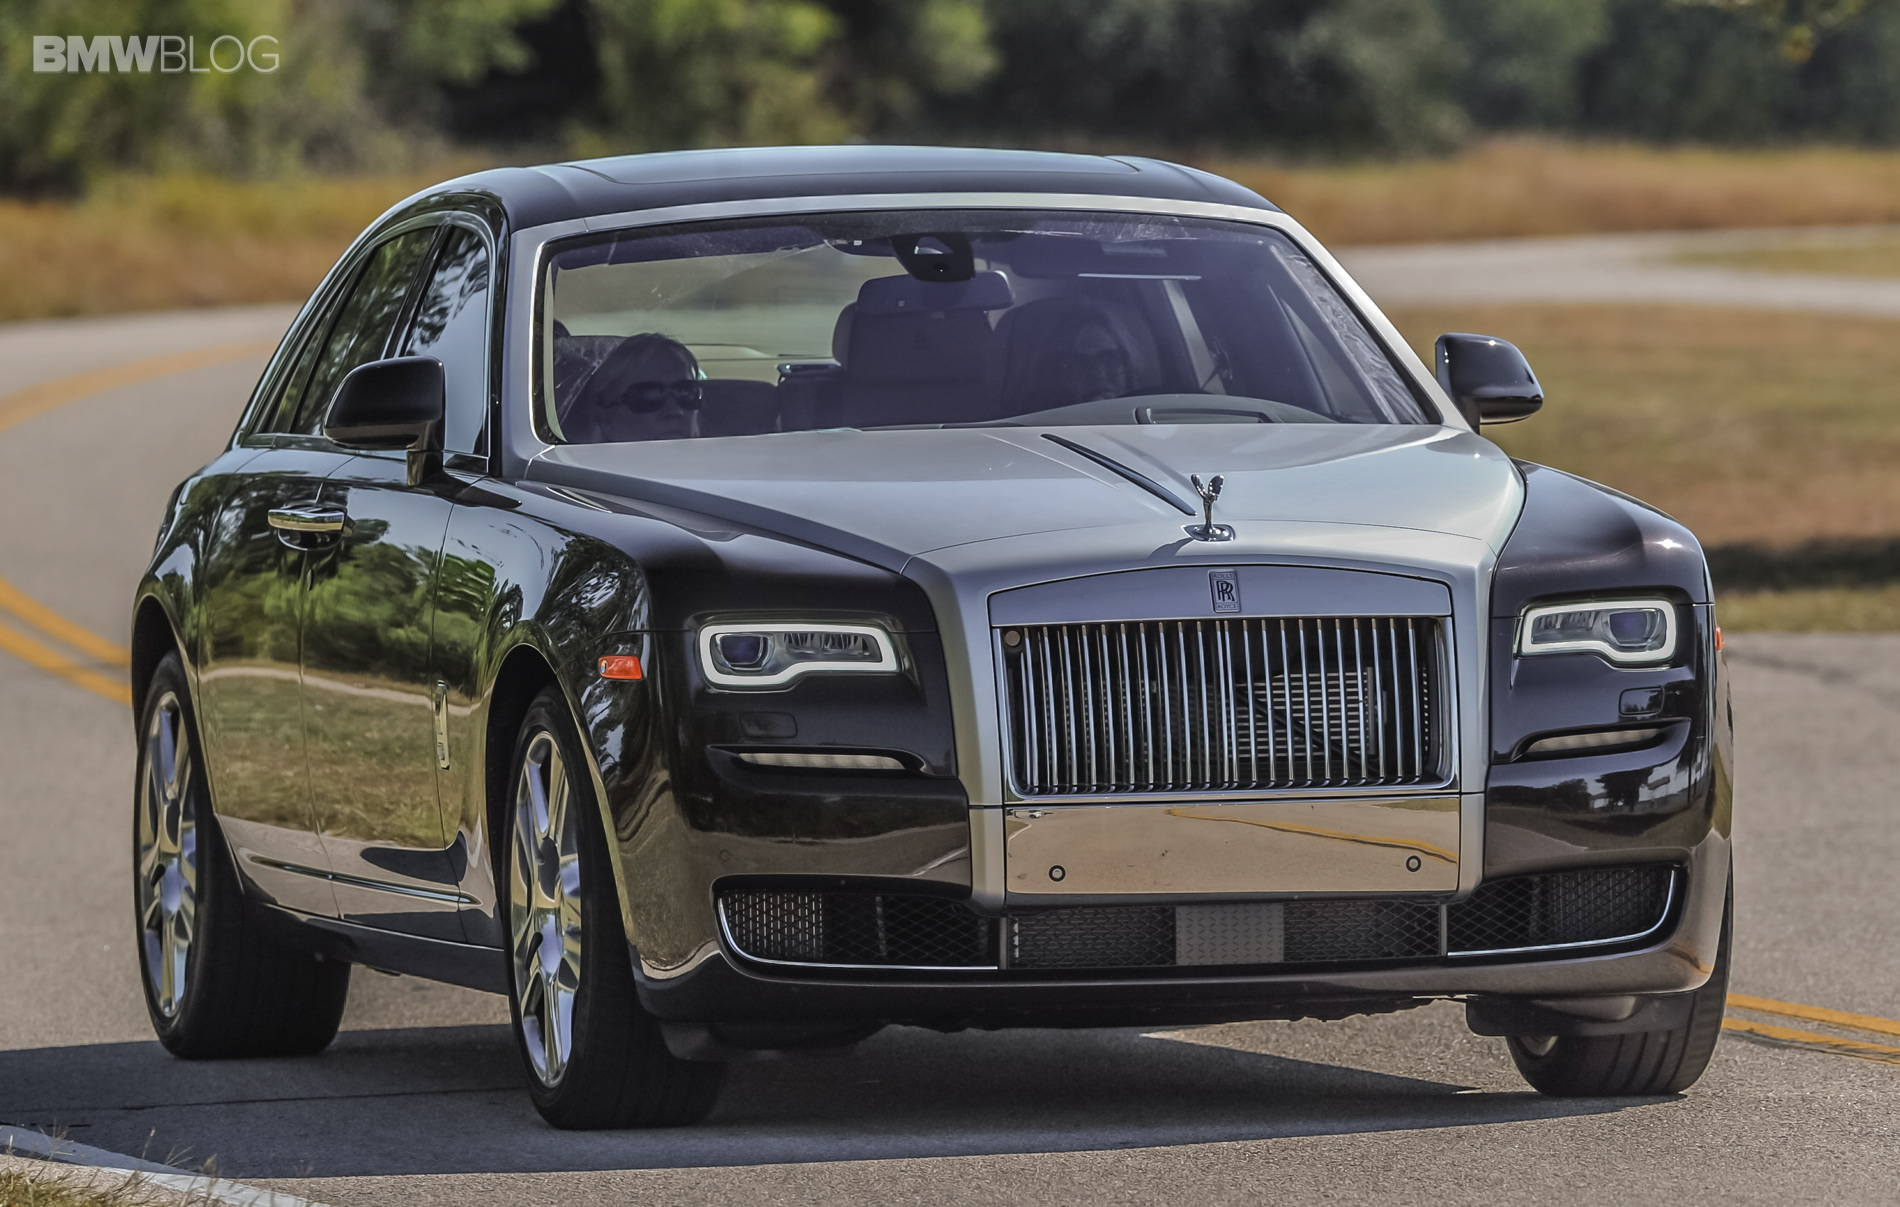 2015 Rolls Royce Phantom #7